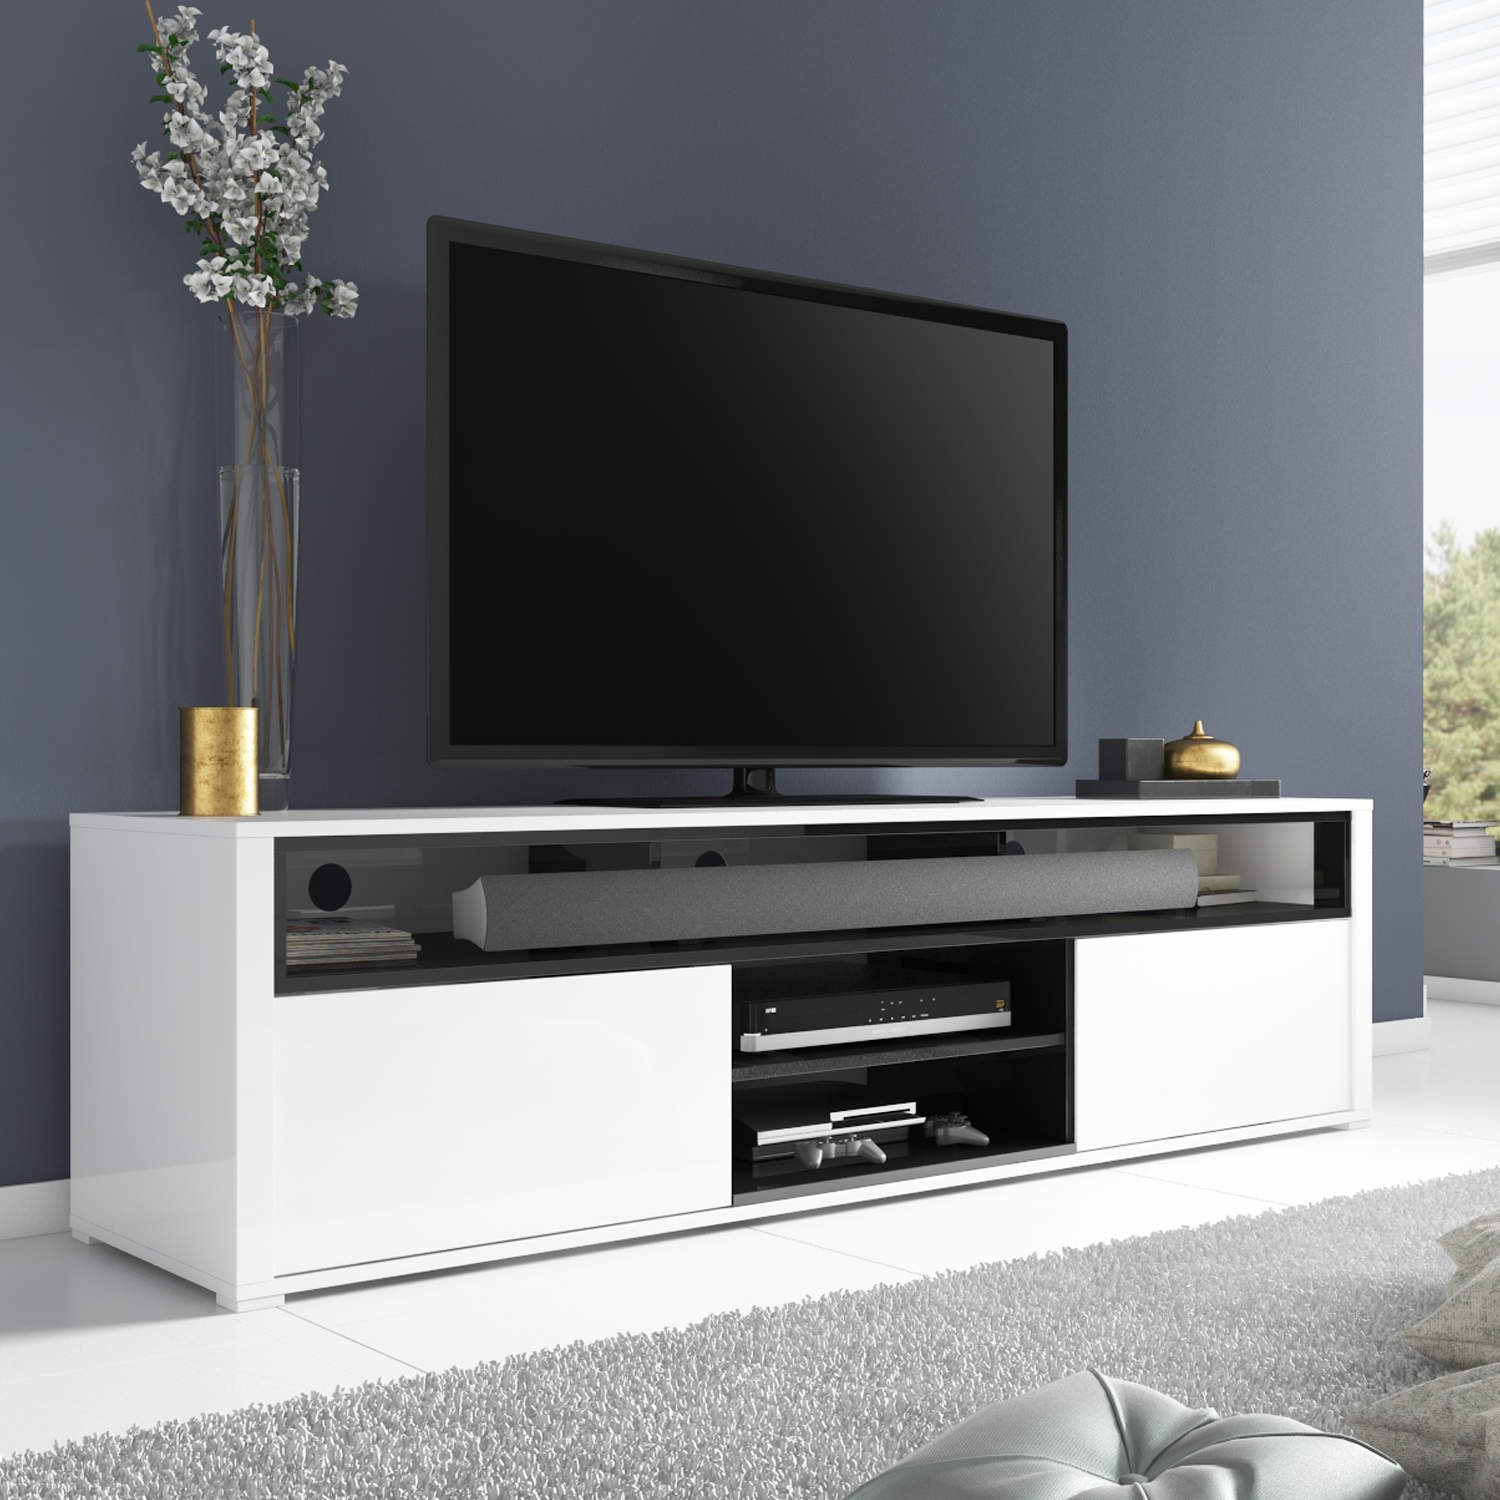 Neo White High Gloss Tv Unit With Soundbar Shelf Evq001 Appliances